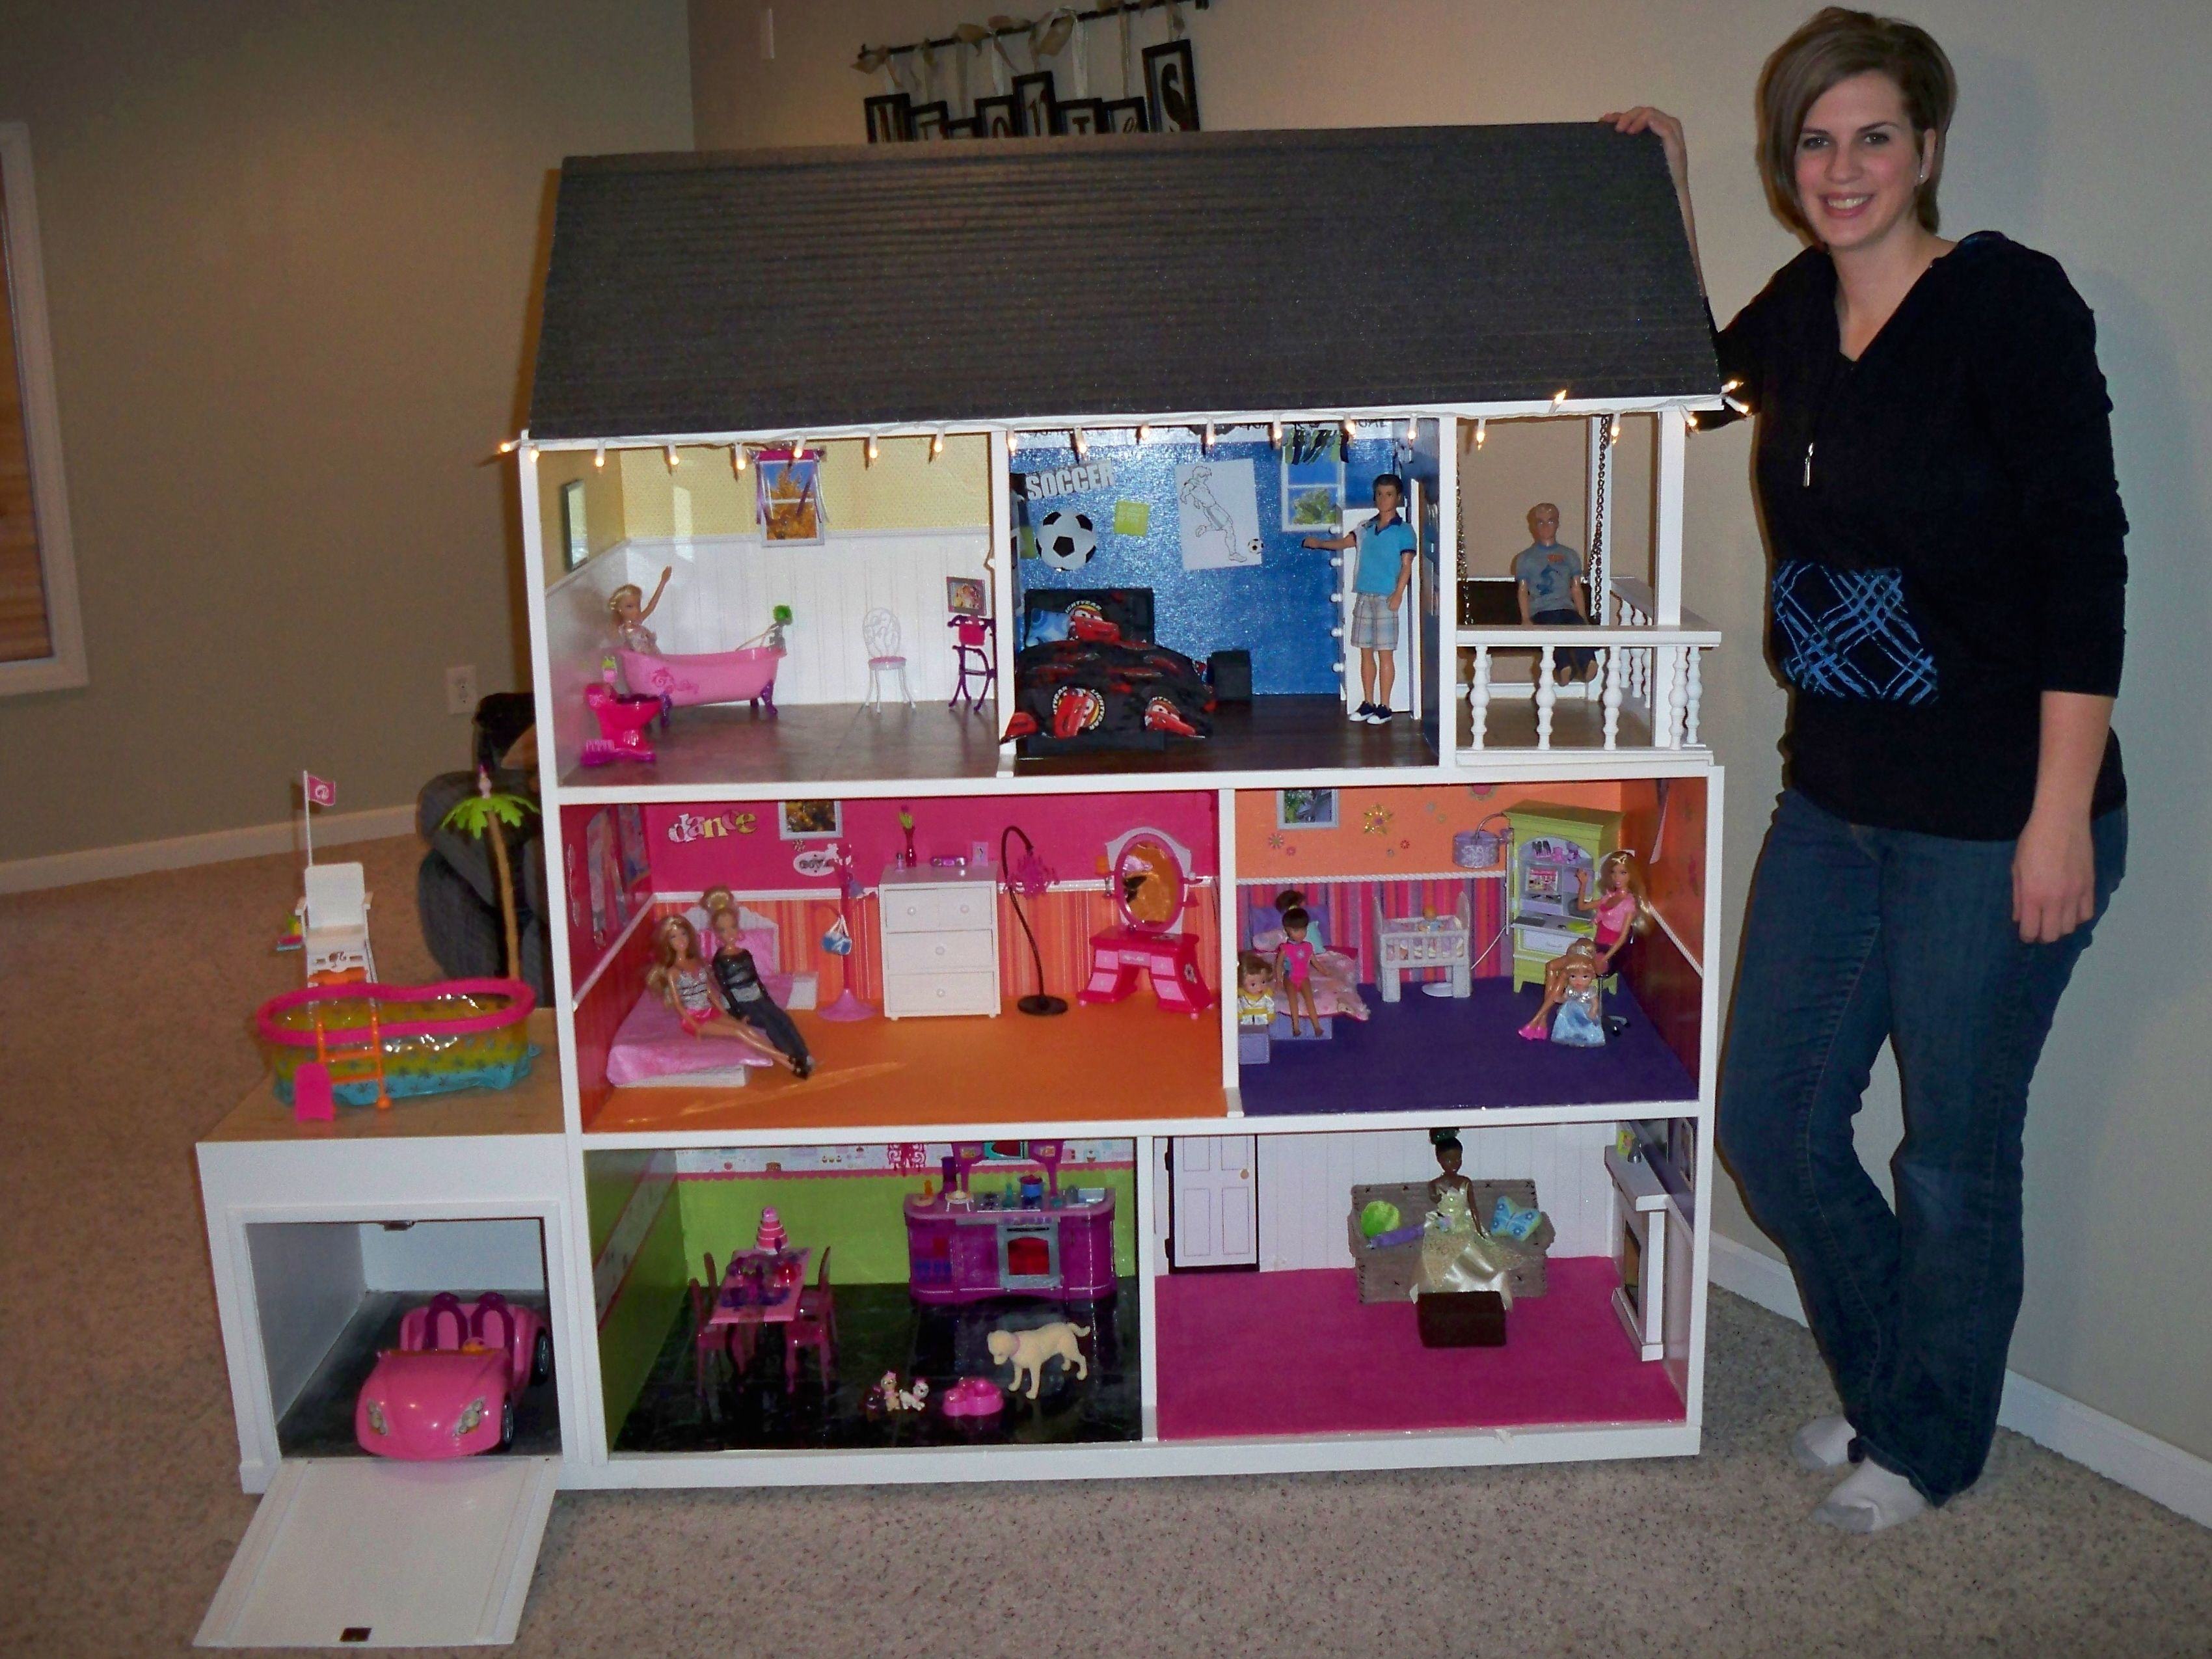 Mobili Per Casa Di Barbie Fai Da Te : The coolest barbie house ever! thinkin bout makin this for my nieces